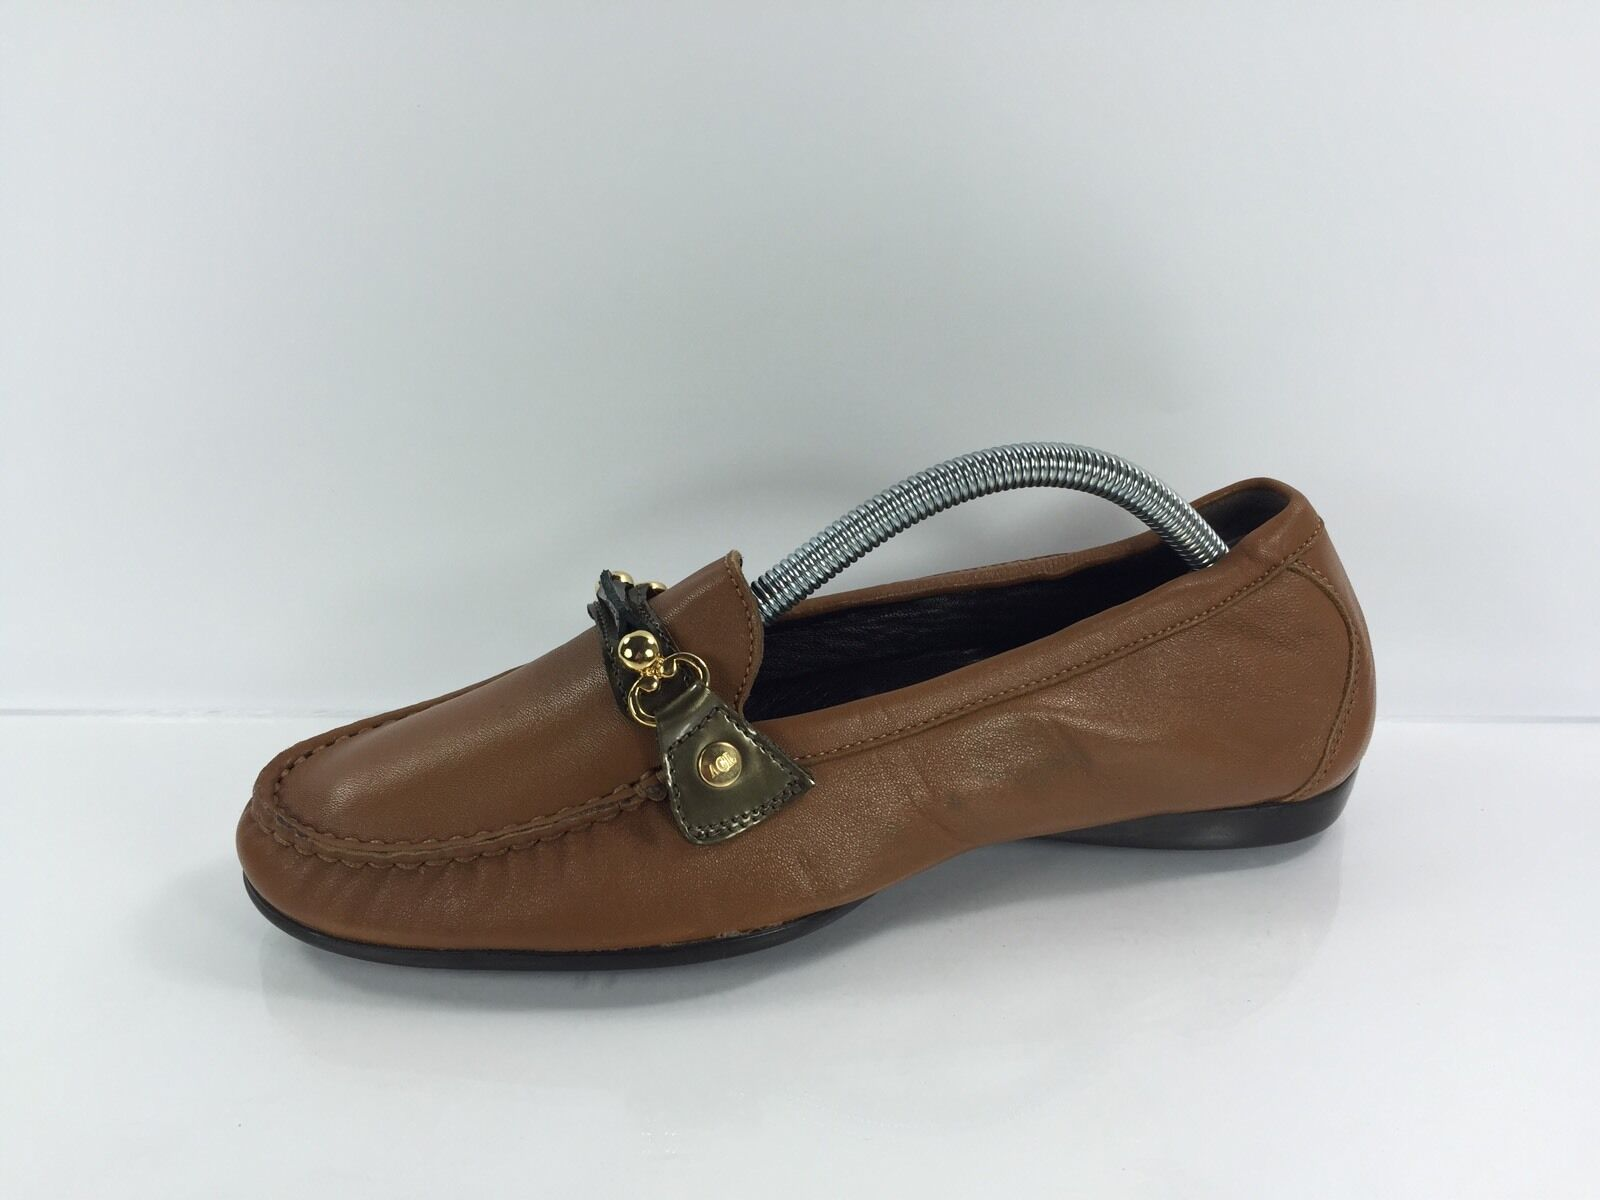 AGL Women's Brown Leather Flats 38